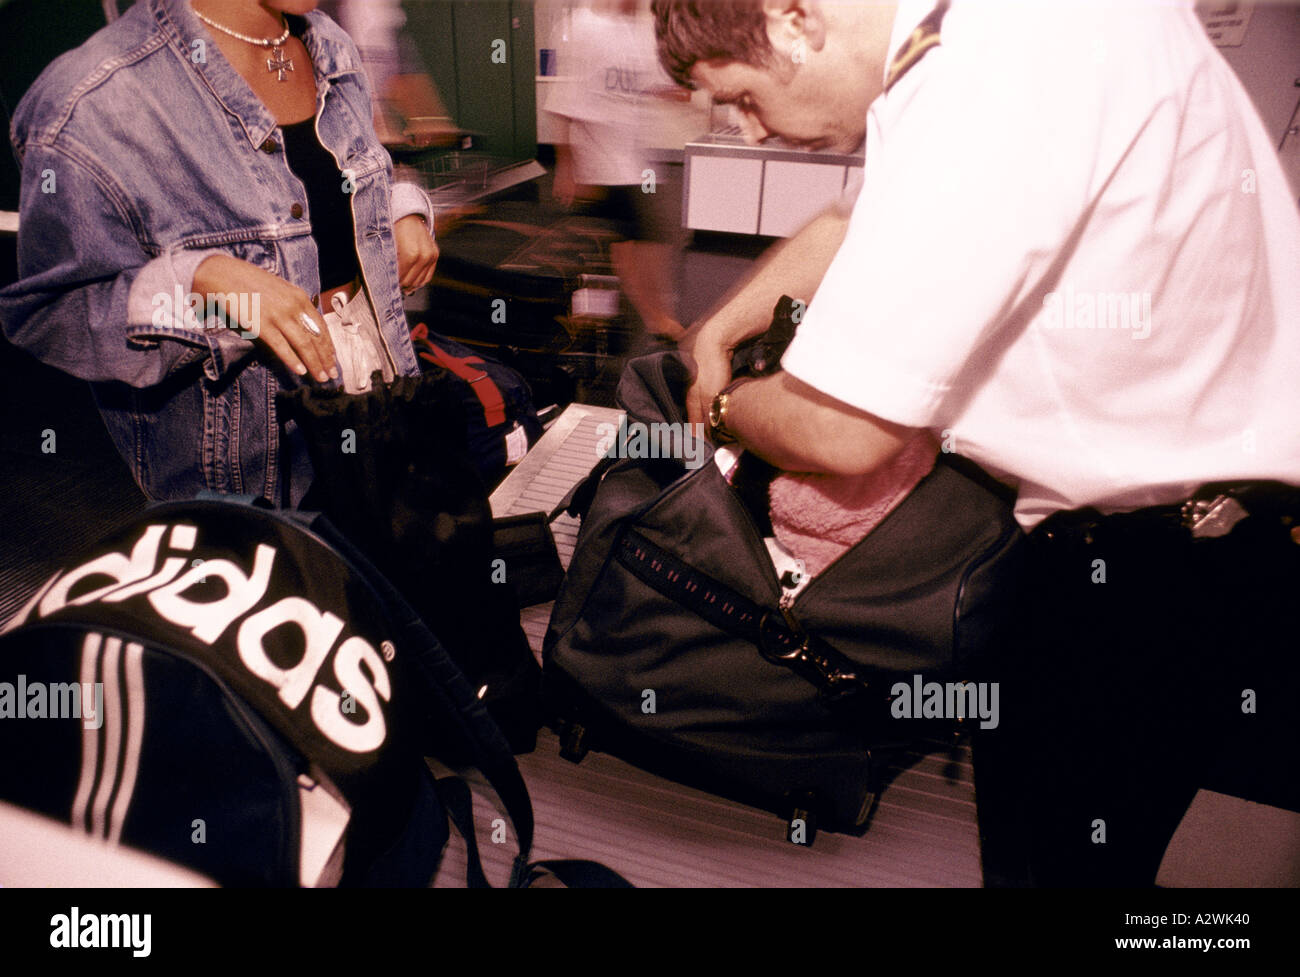 passenger bag being checked manchester airport - Stock Image